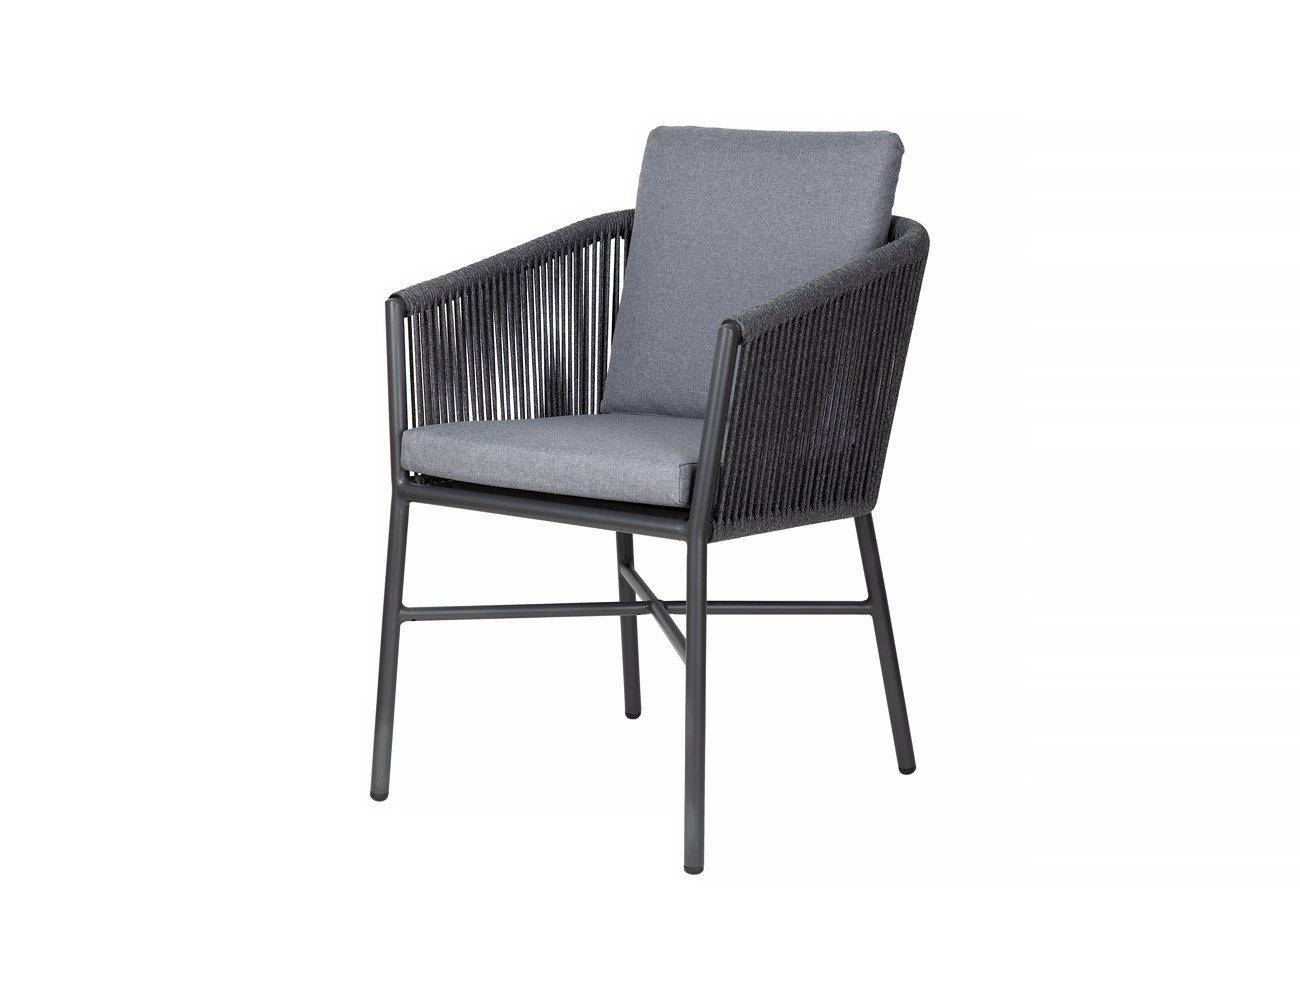 Swamphen Aluminium and Rope Outdoor Dining Chair